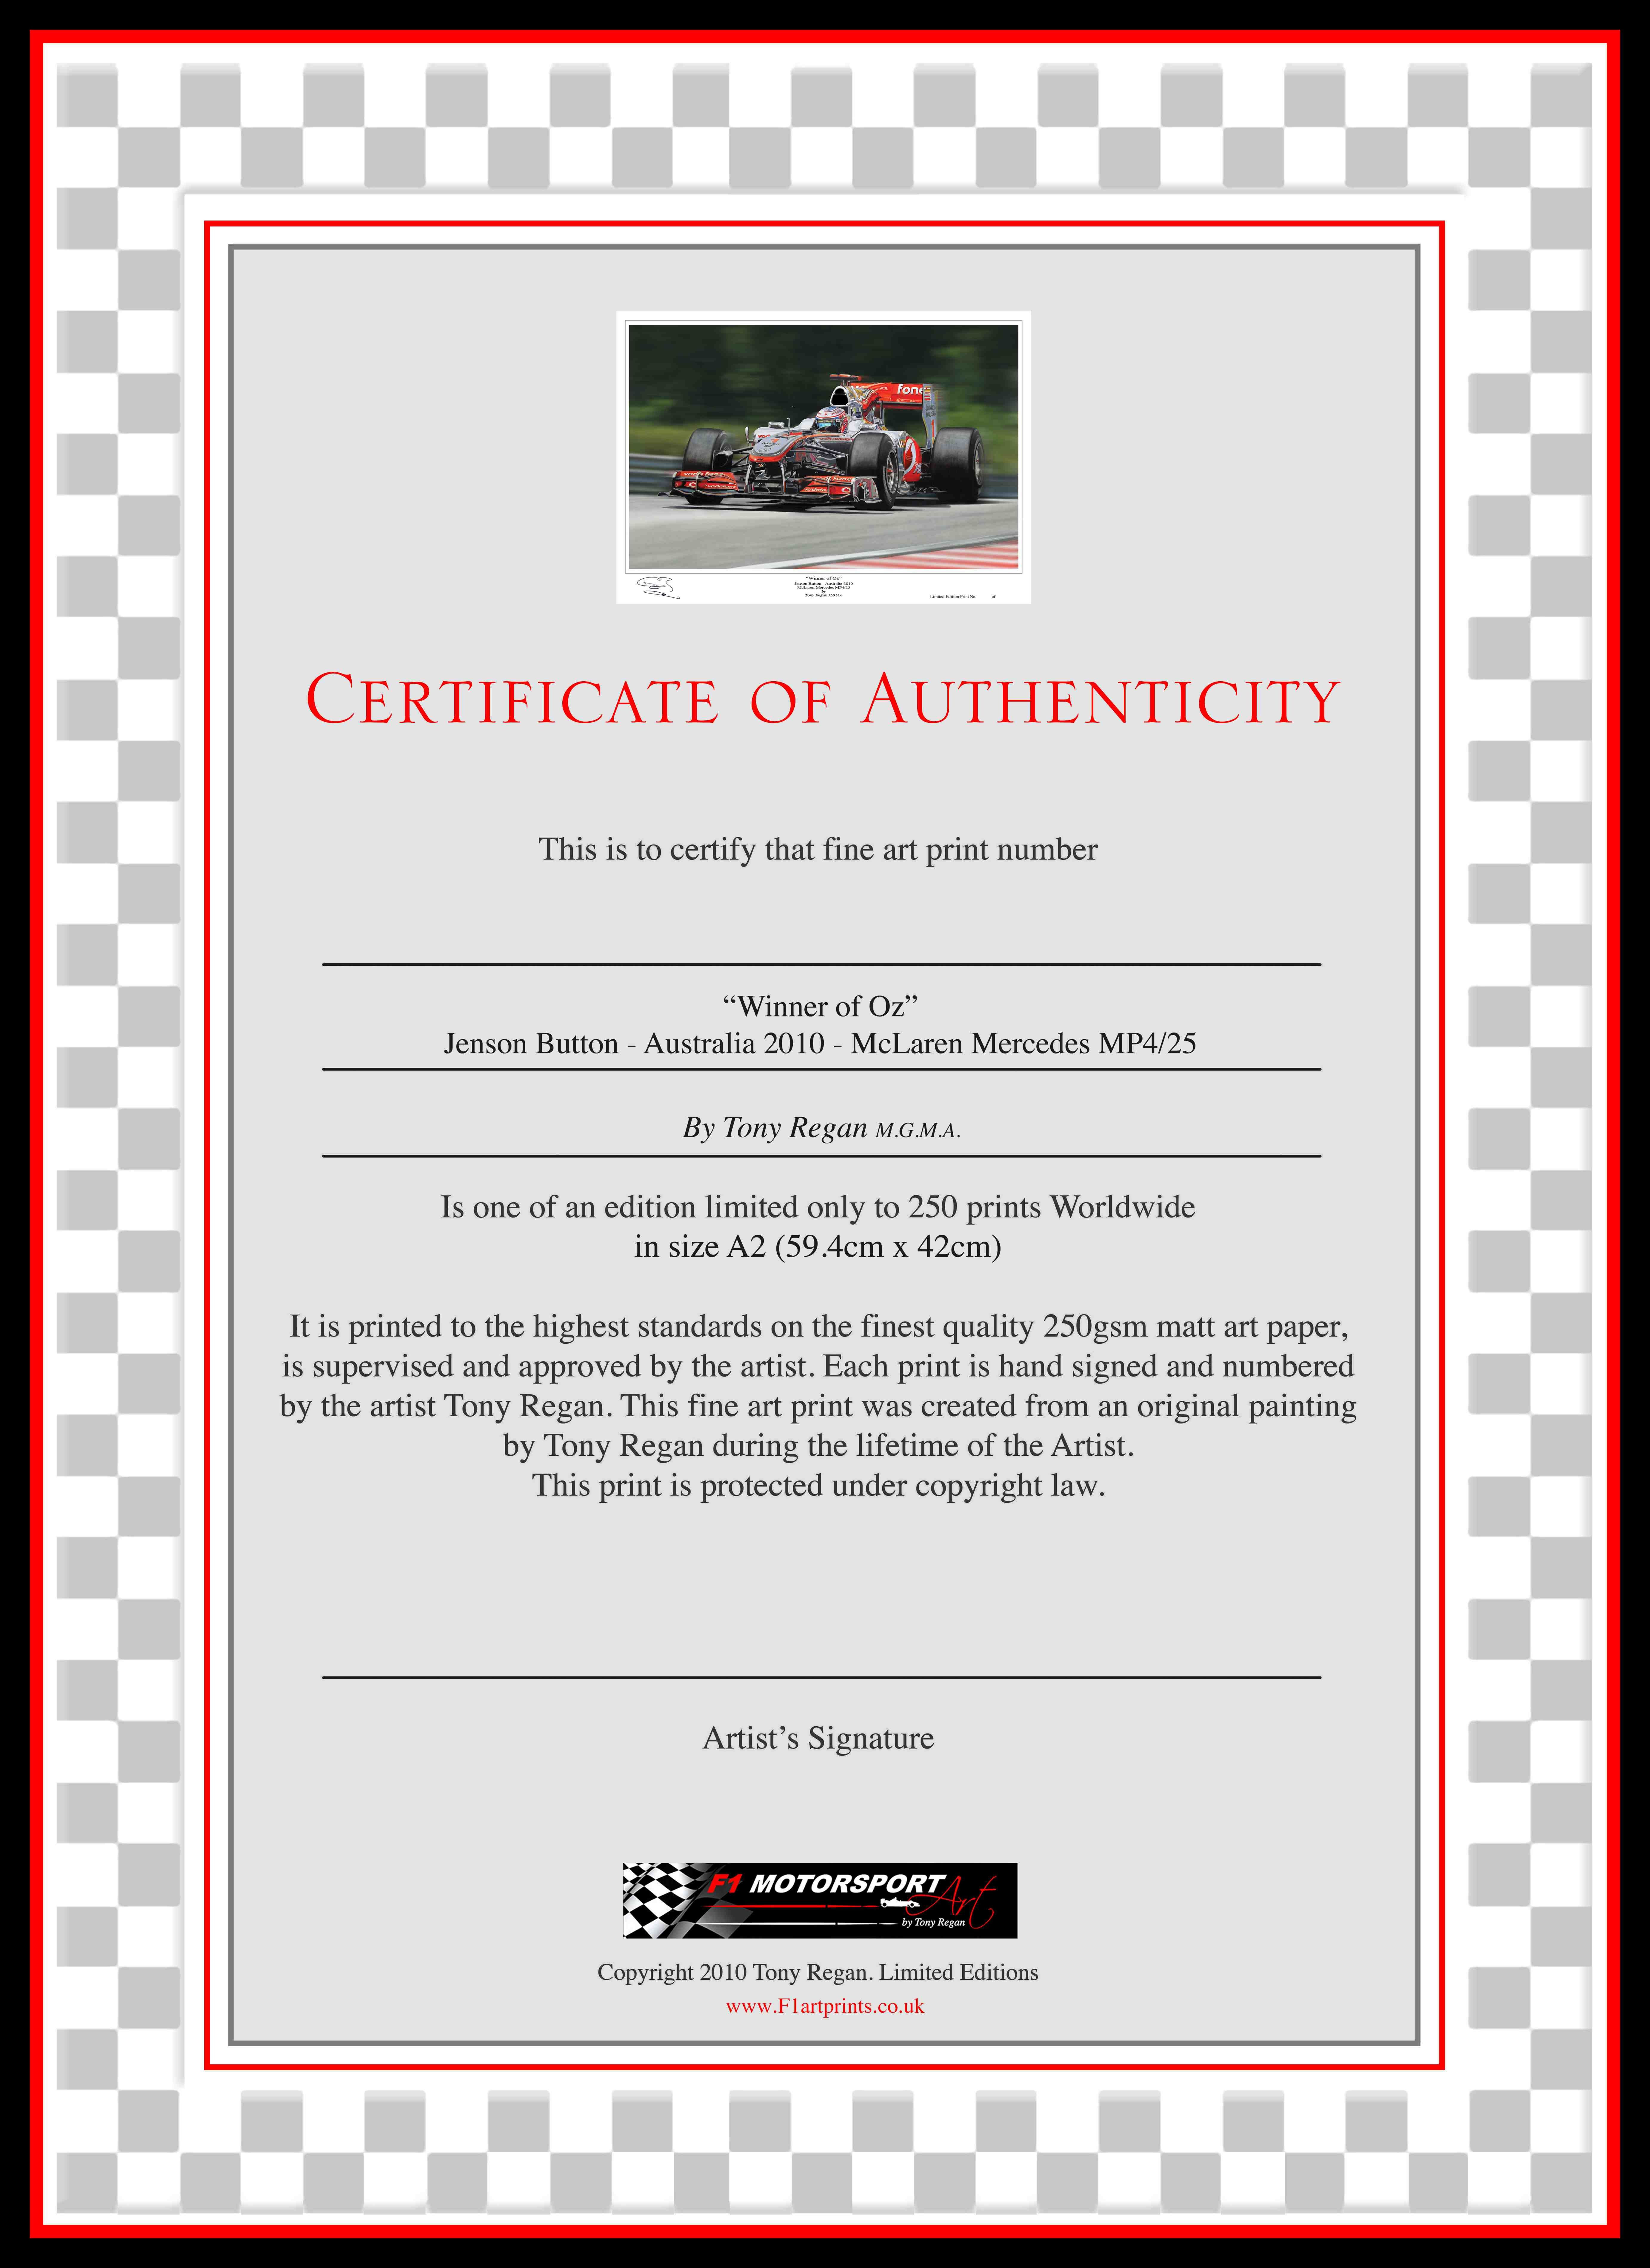 Jenson Button McLaren Winner of Oz Art Print COA